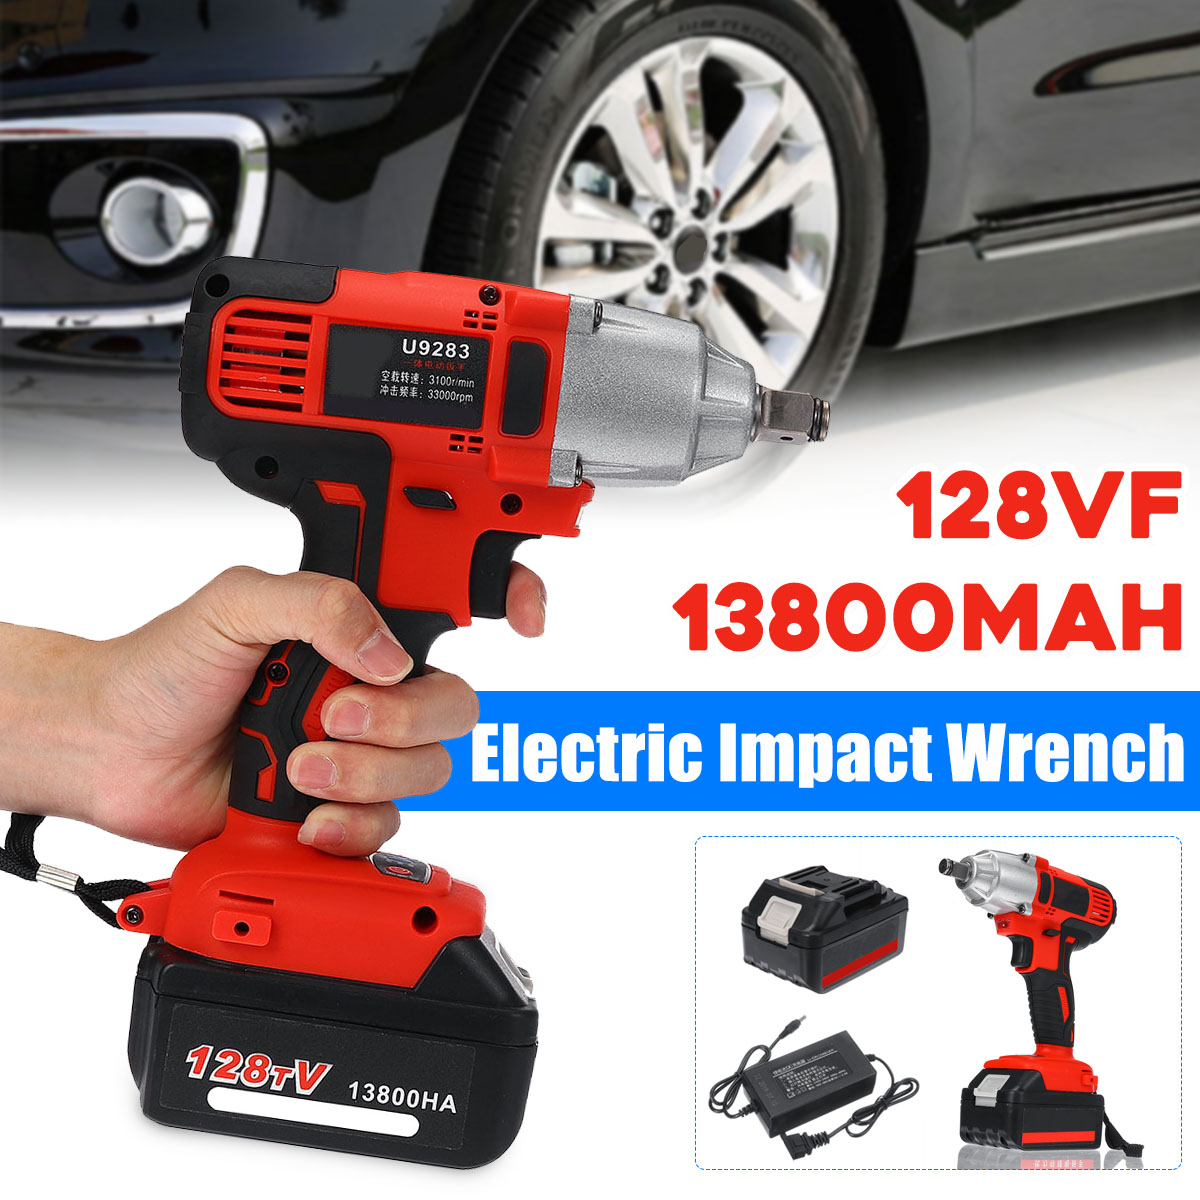 128VF 13800mAh Multifunctional Electric Wrench Battery Infinitely Variable Speed Electric Impact Wrench Woodworking